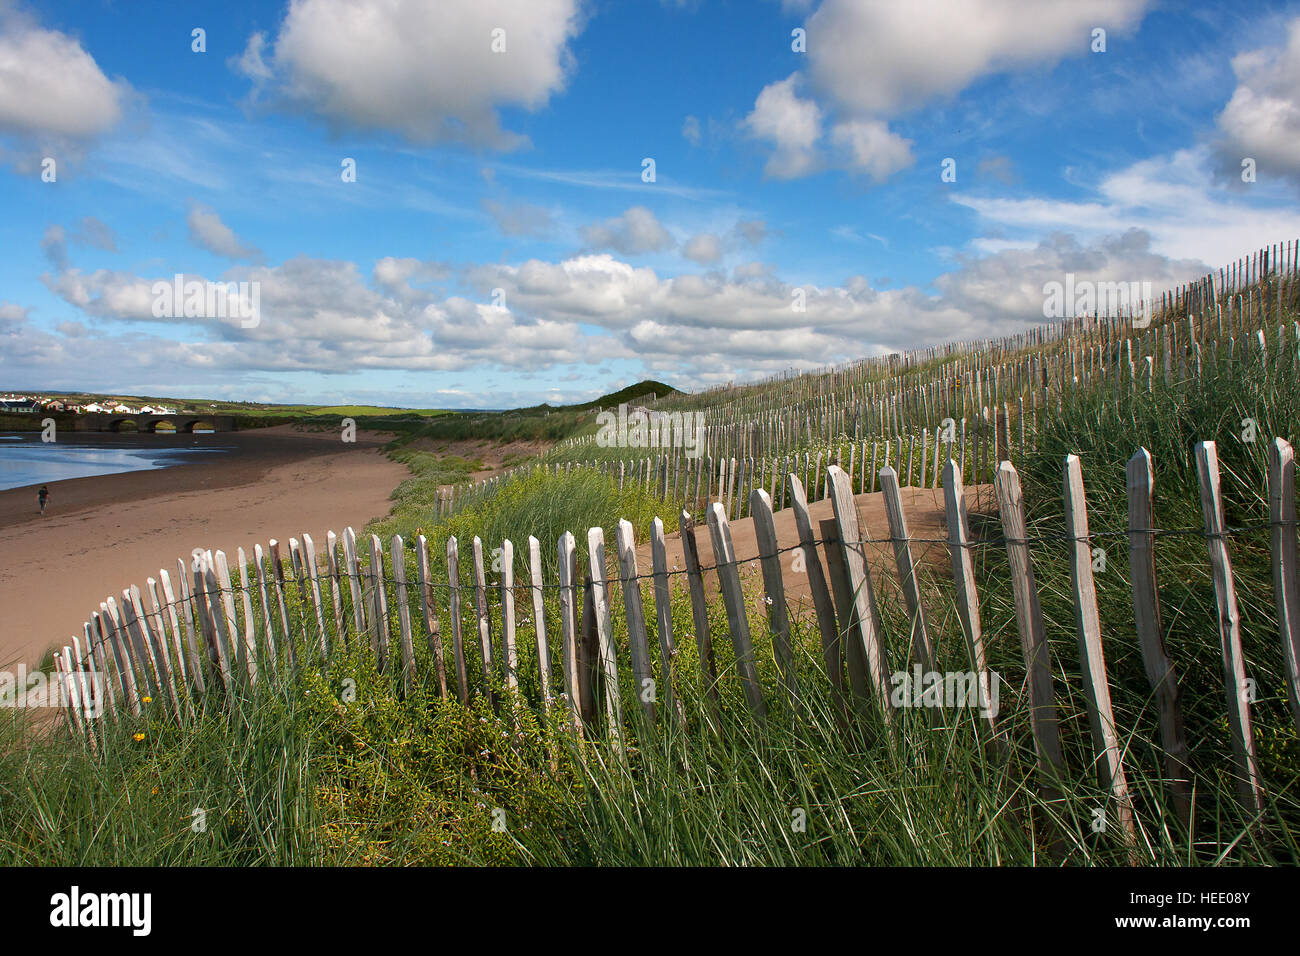 Wired picket fence used as sand dune conservation measure to preserve the natural form and protect natural wildlife - Stock Image